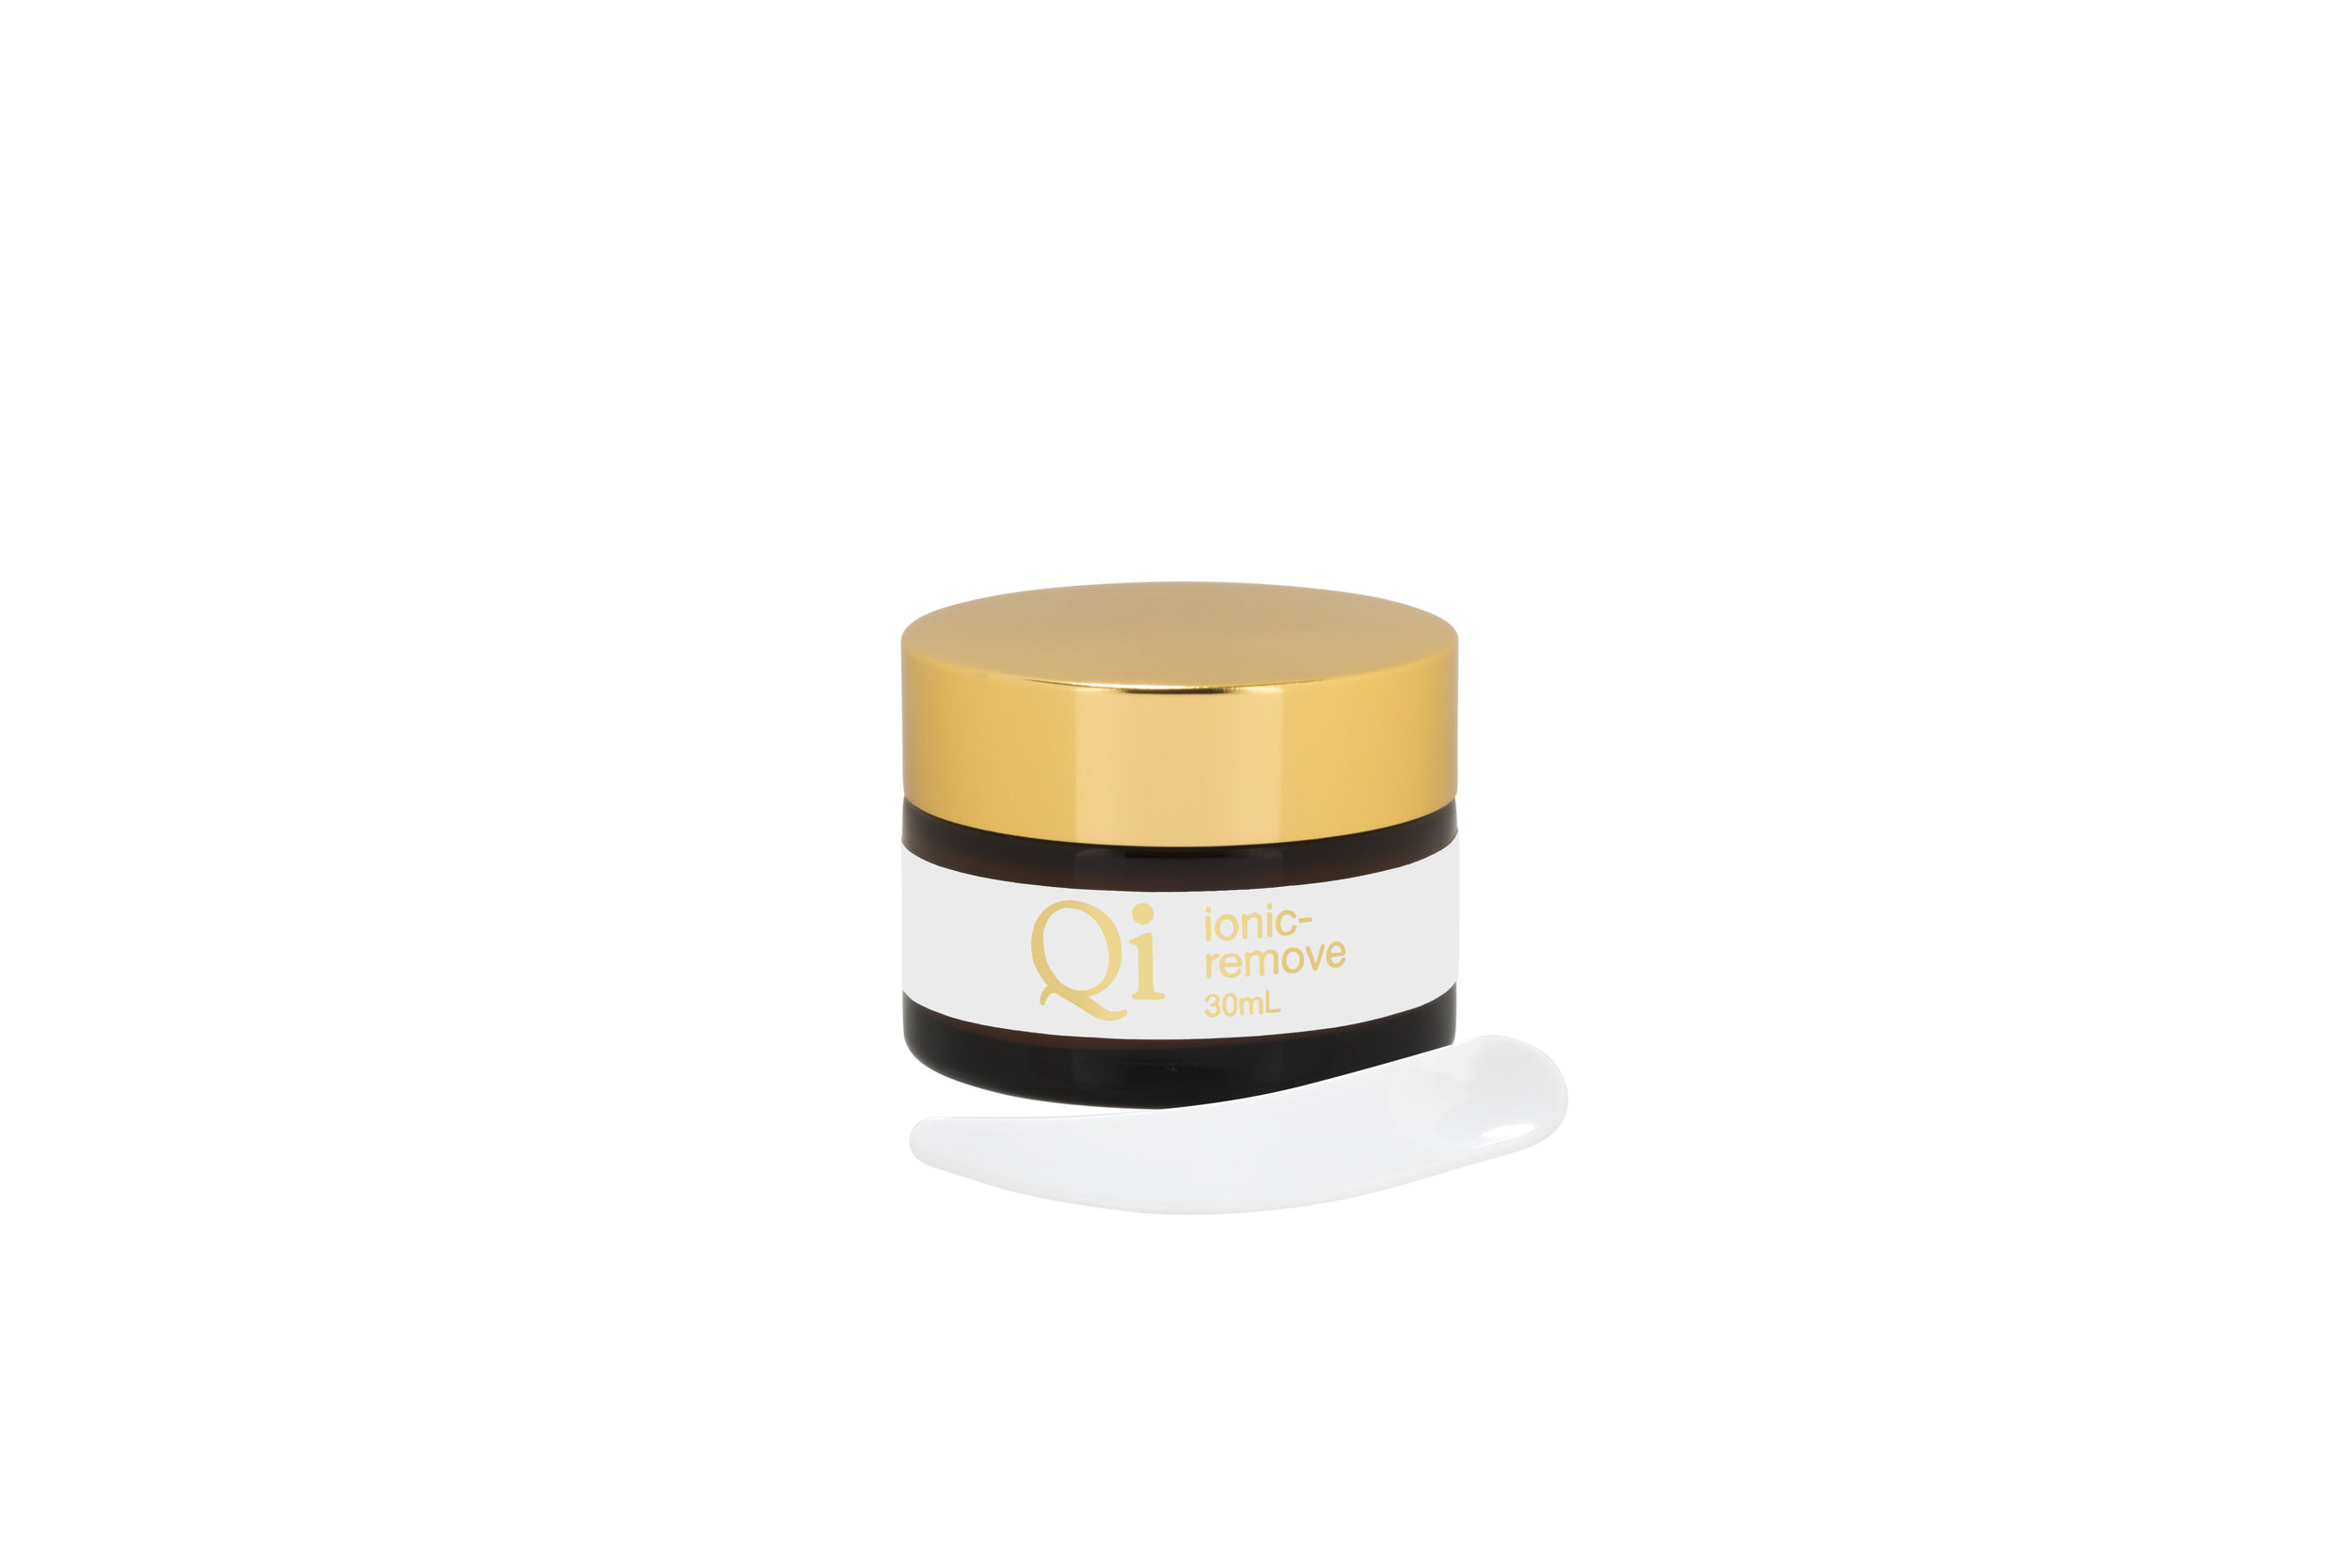 qi-beauty-remove-exfoliant